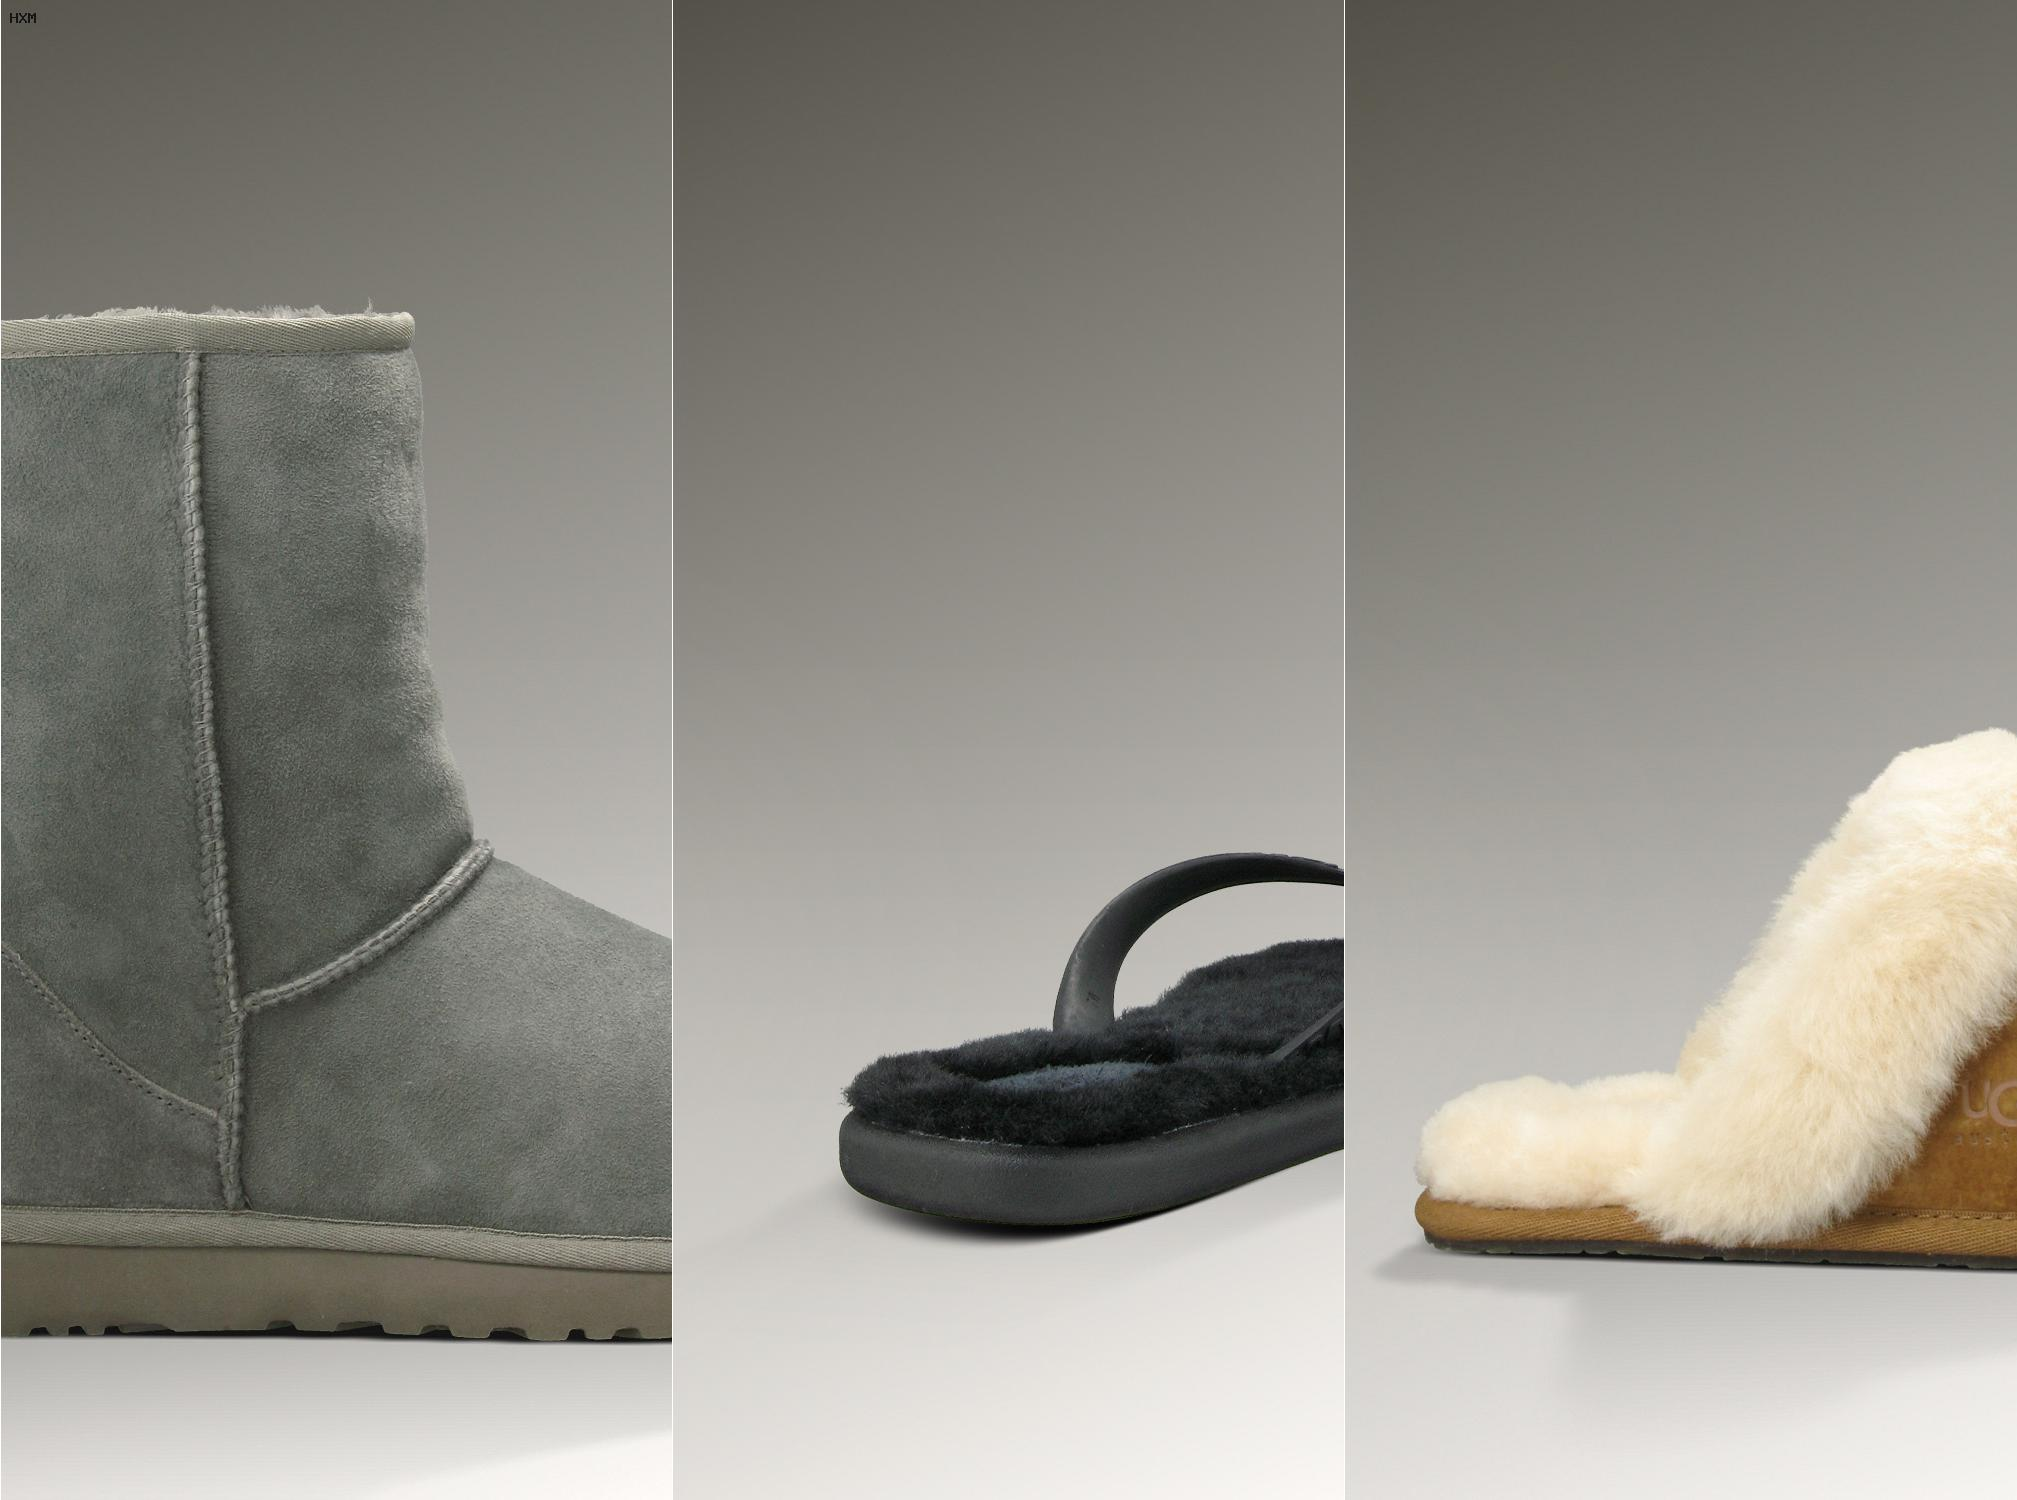 chausson hommes uggs